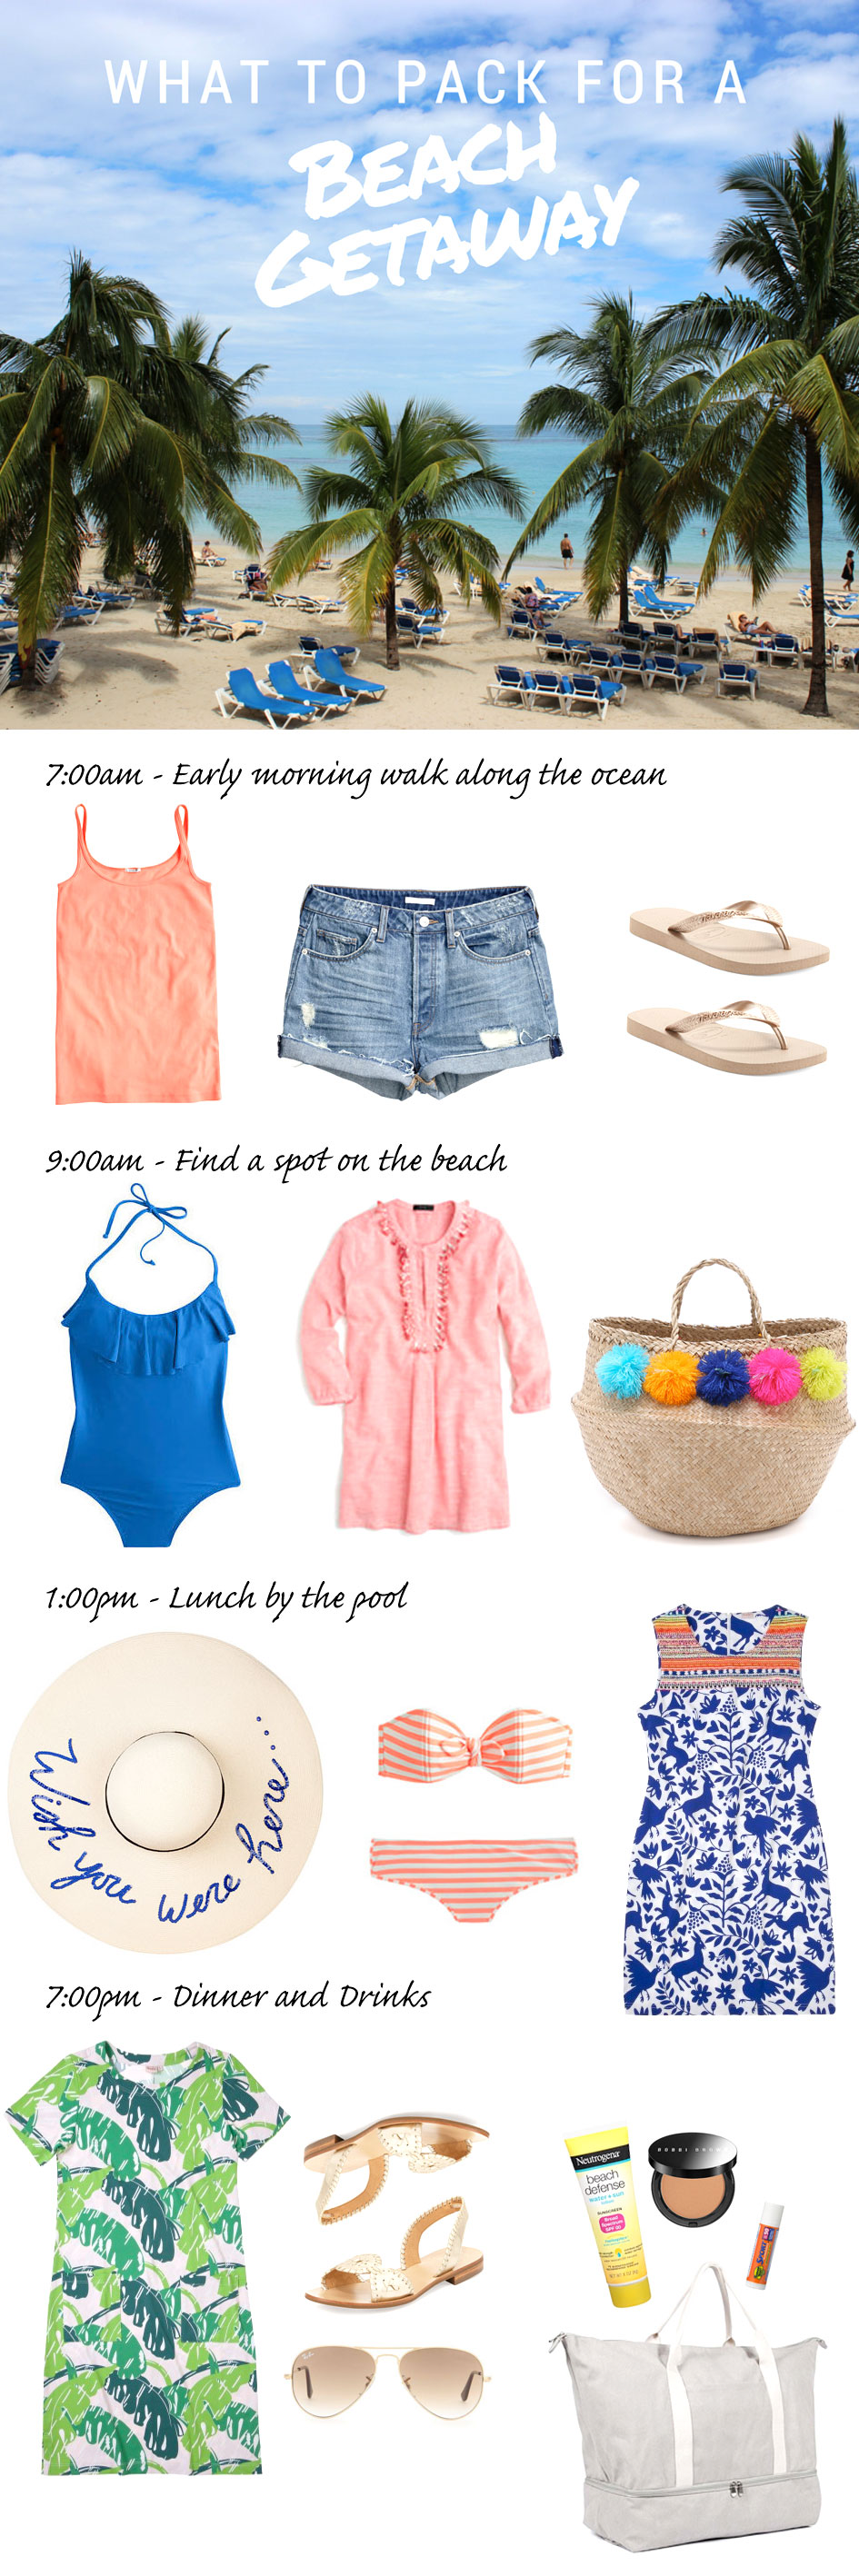 What to Pack – Beach Getaway